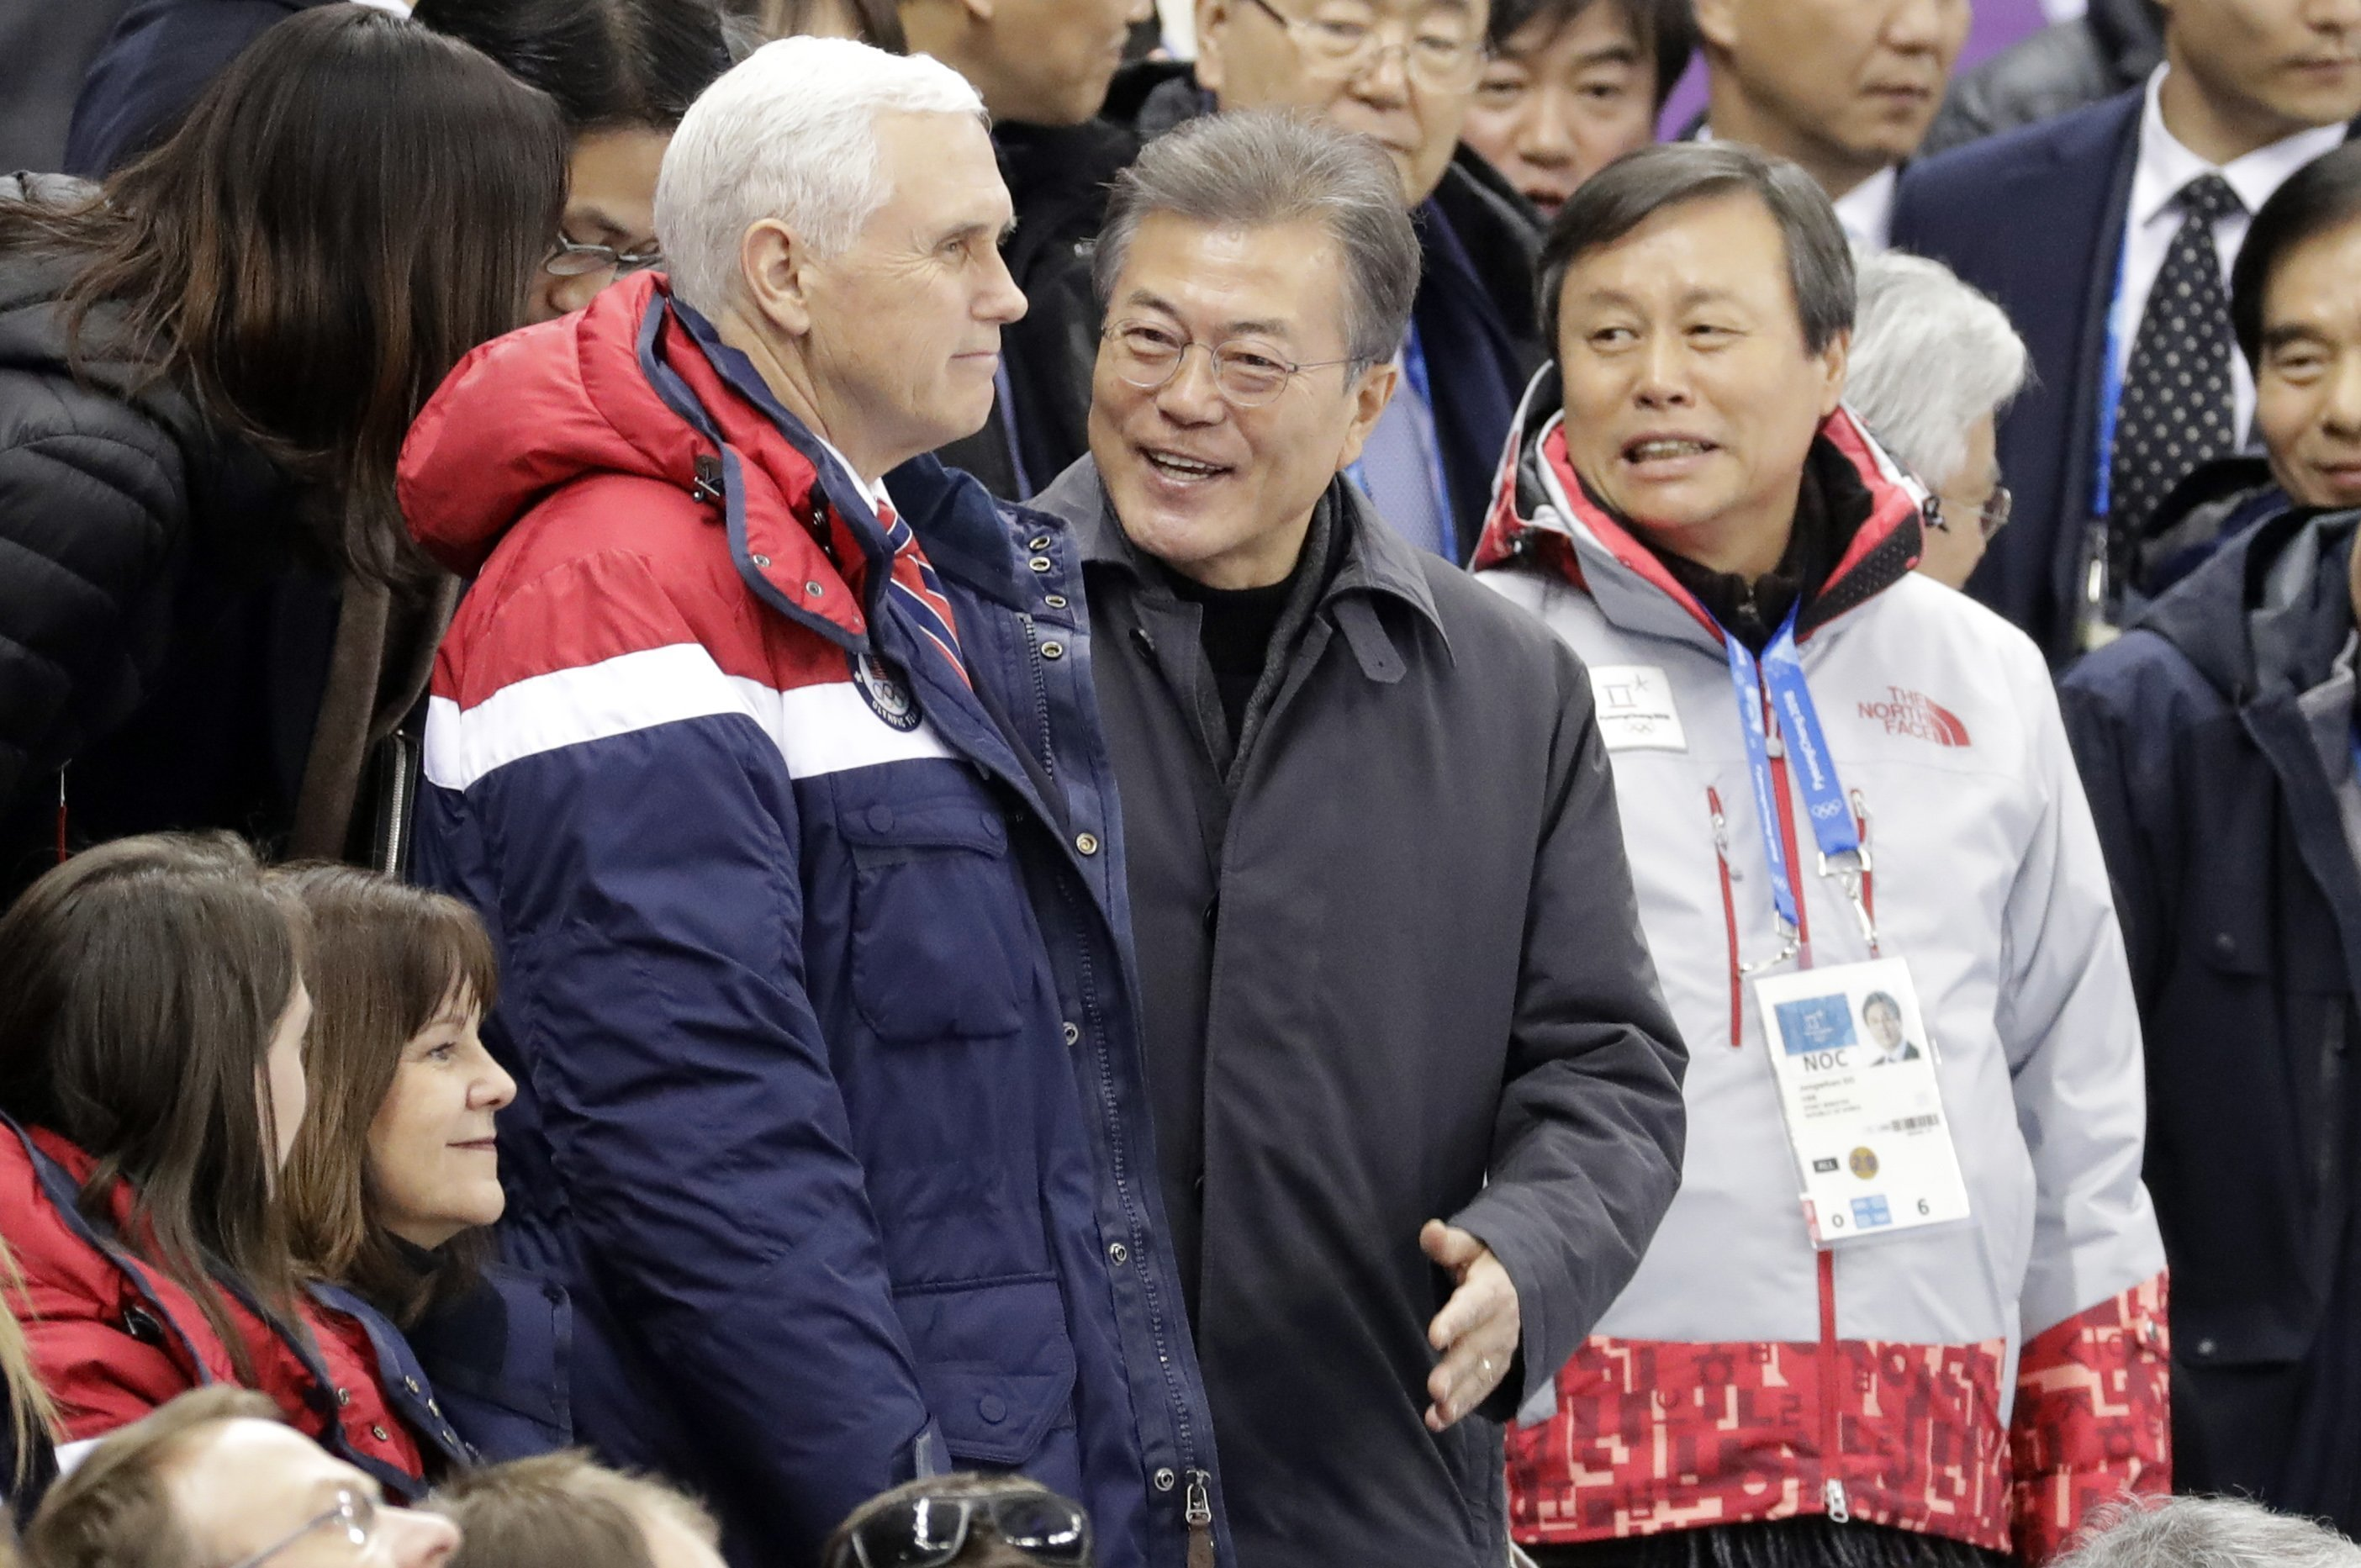 U.S. Vice President Mike Pence, center left, and South Korean President Moon Jae-in attend the women's 500 meters short-track speedskating in the Gangneung Ice Arena at the 2018 Winter Olympics in Gangneung, South Korea, Feb. 10, 2018.